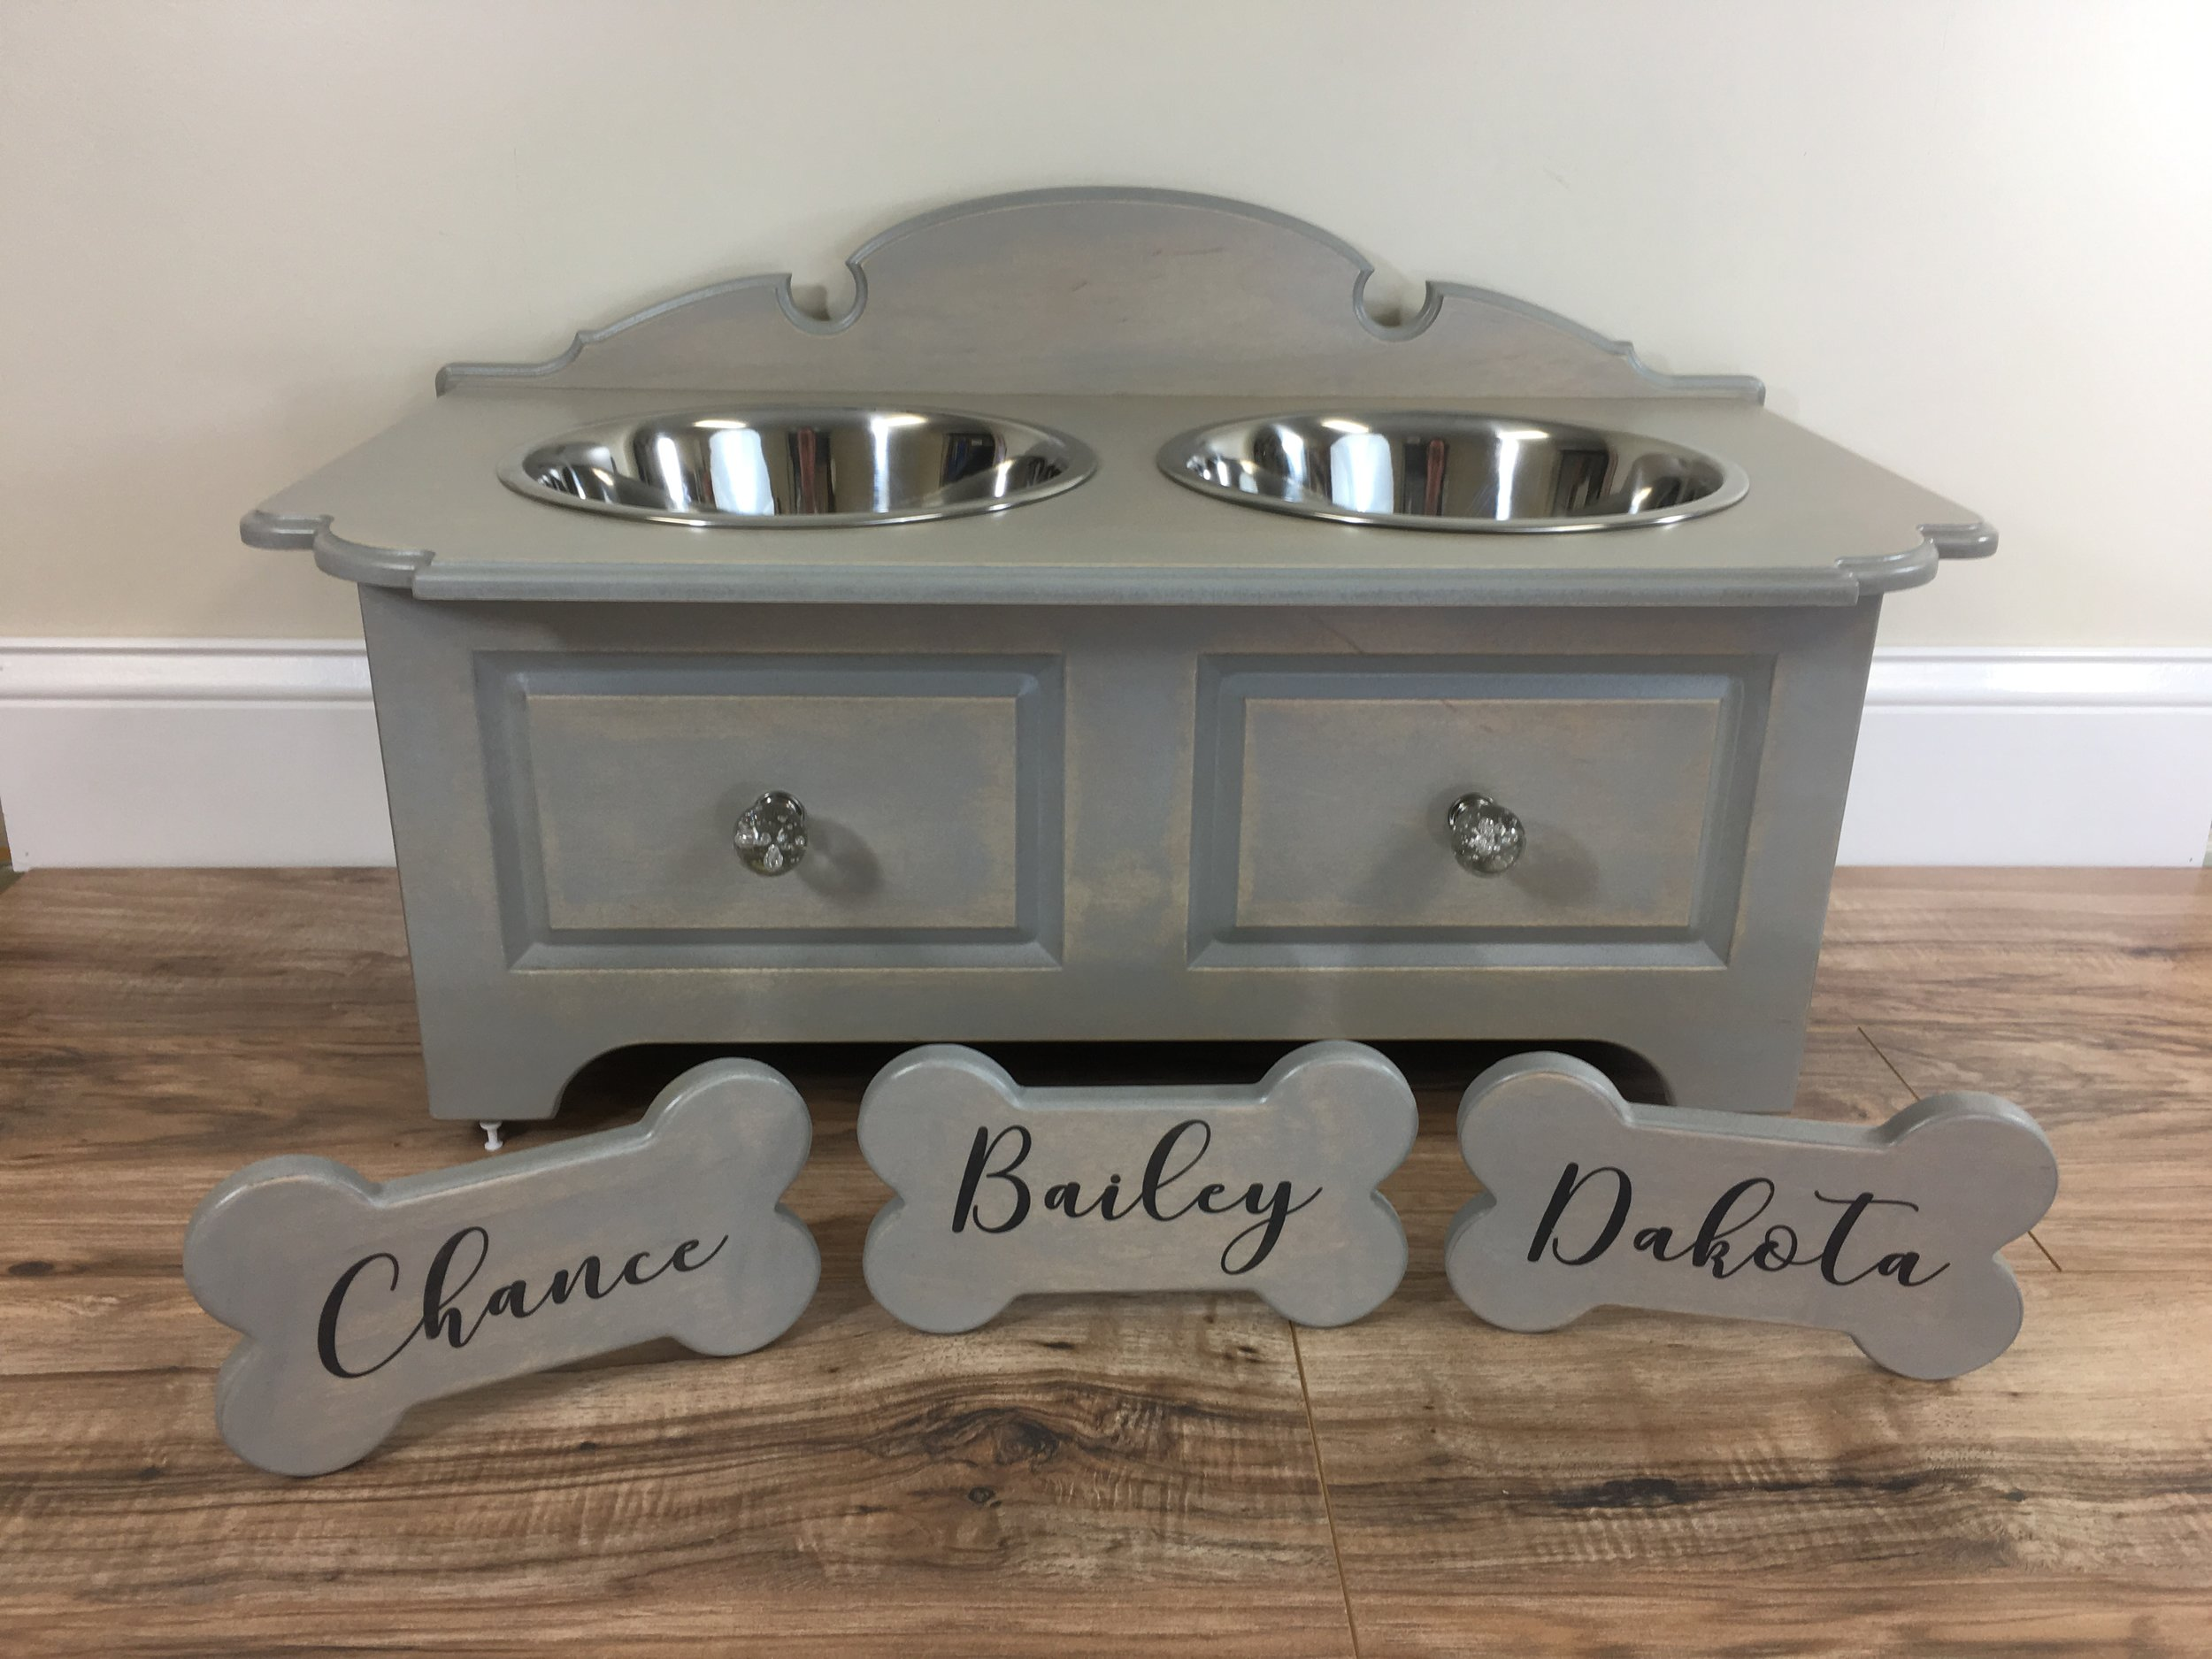 Elevated and elegant dog bowl for large breeds. It looks like a piece of furniture.